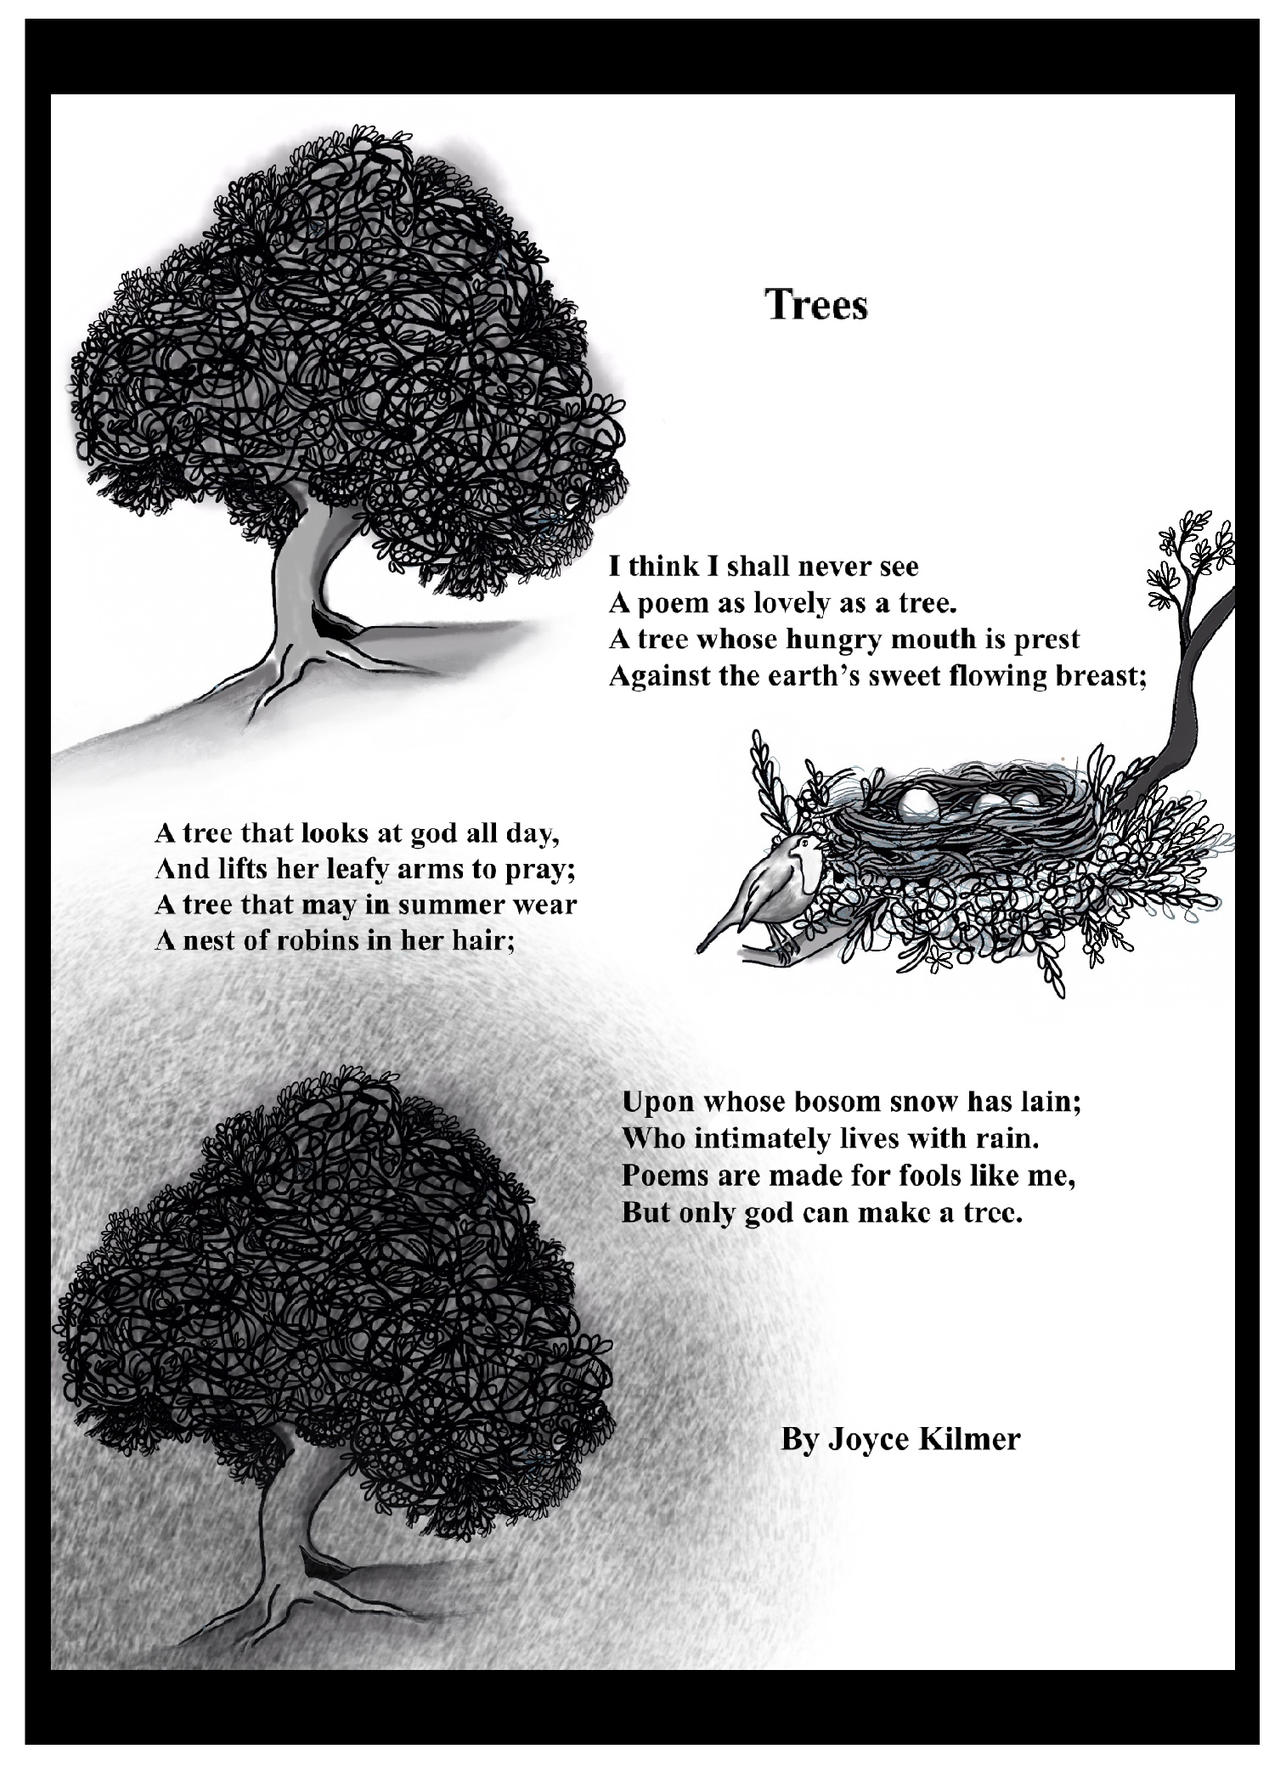 Trees Poem Illustration By Robyn91 On Deviantart Shop trees poem by kilmer, inspirational poetry quote magnet created by whattayasay. deviantart